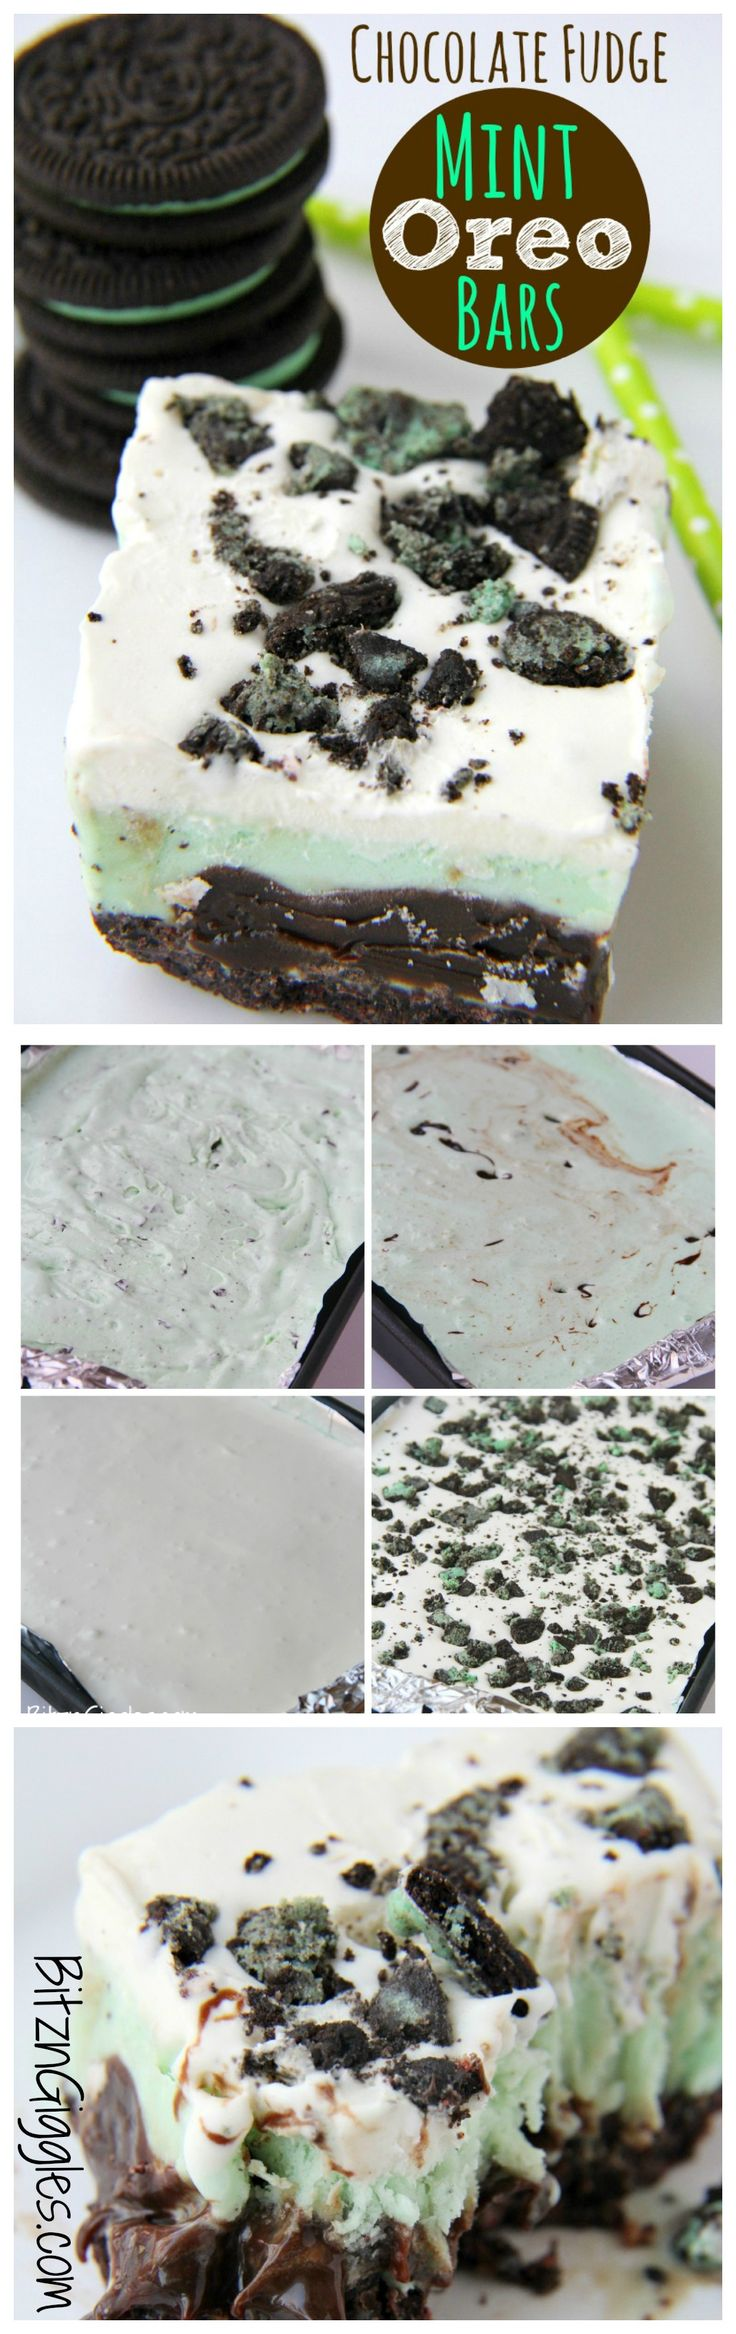 Chocolate Fudge Mint Oreo Bars - Mint chocolate chip ice cream dessert with a crunchy Oreo crust and fudge swirled throughout!